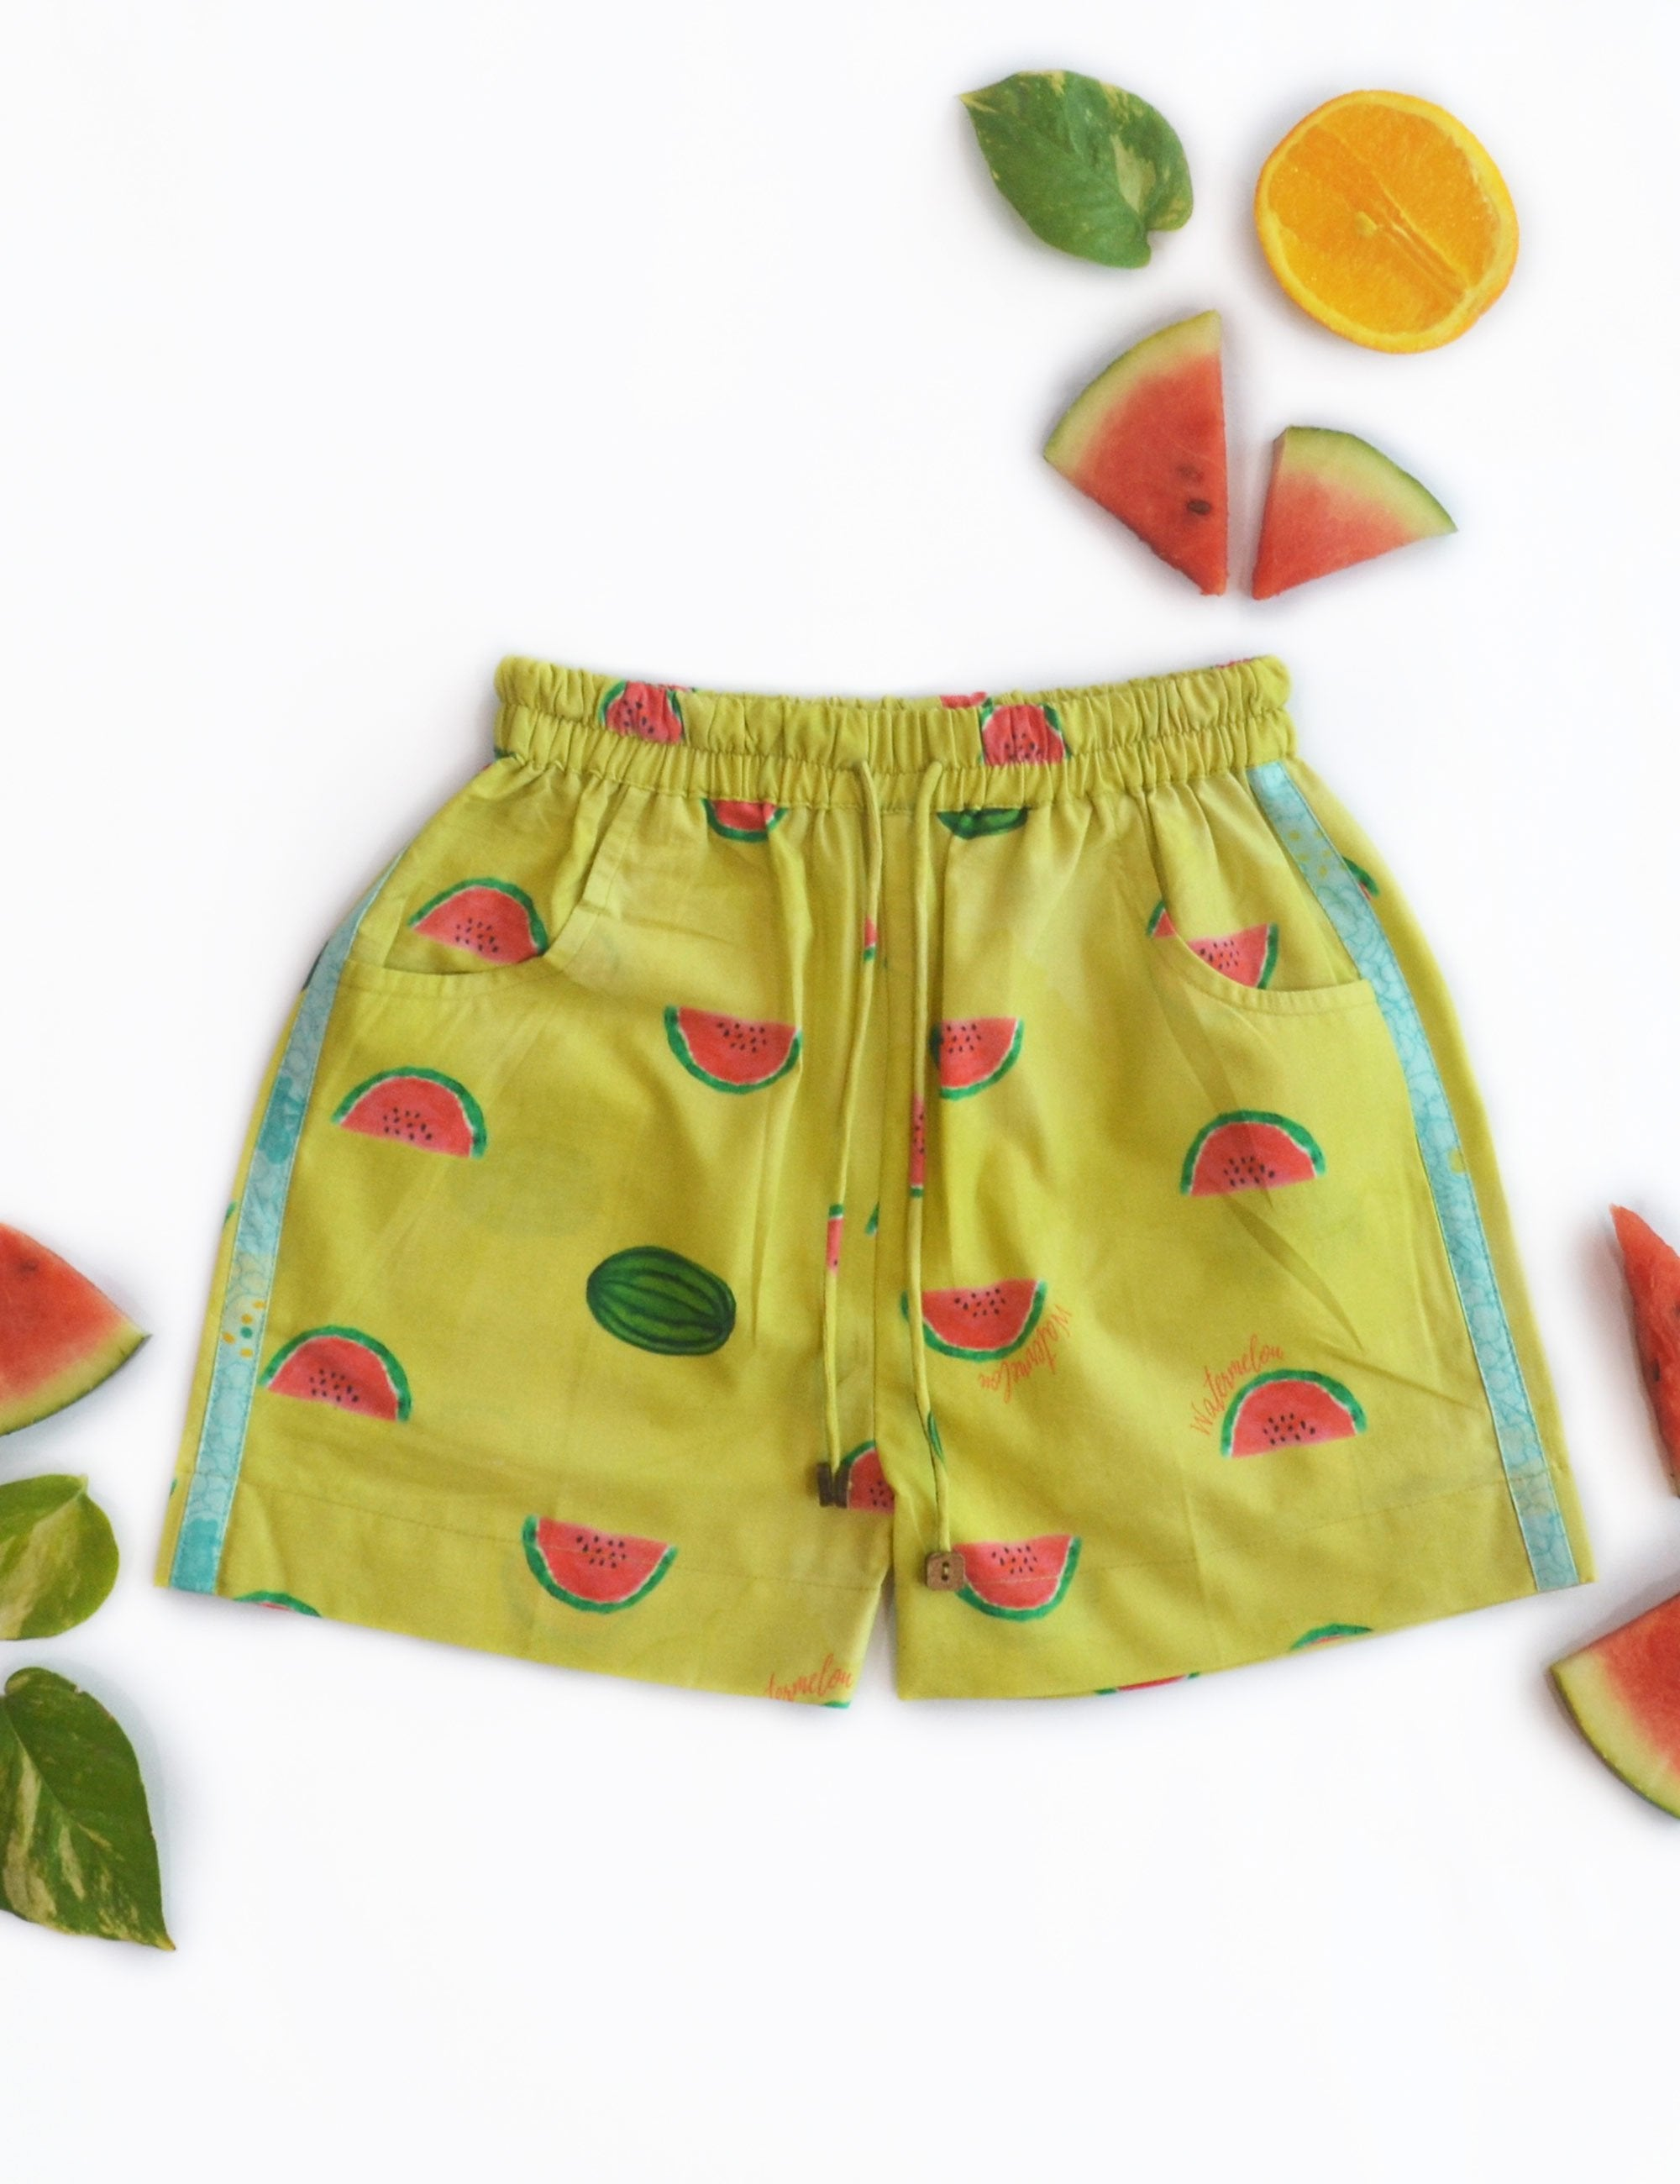 Watermelon Splash Casual Shorts